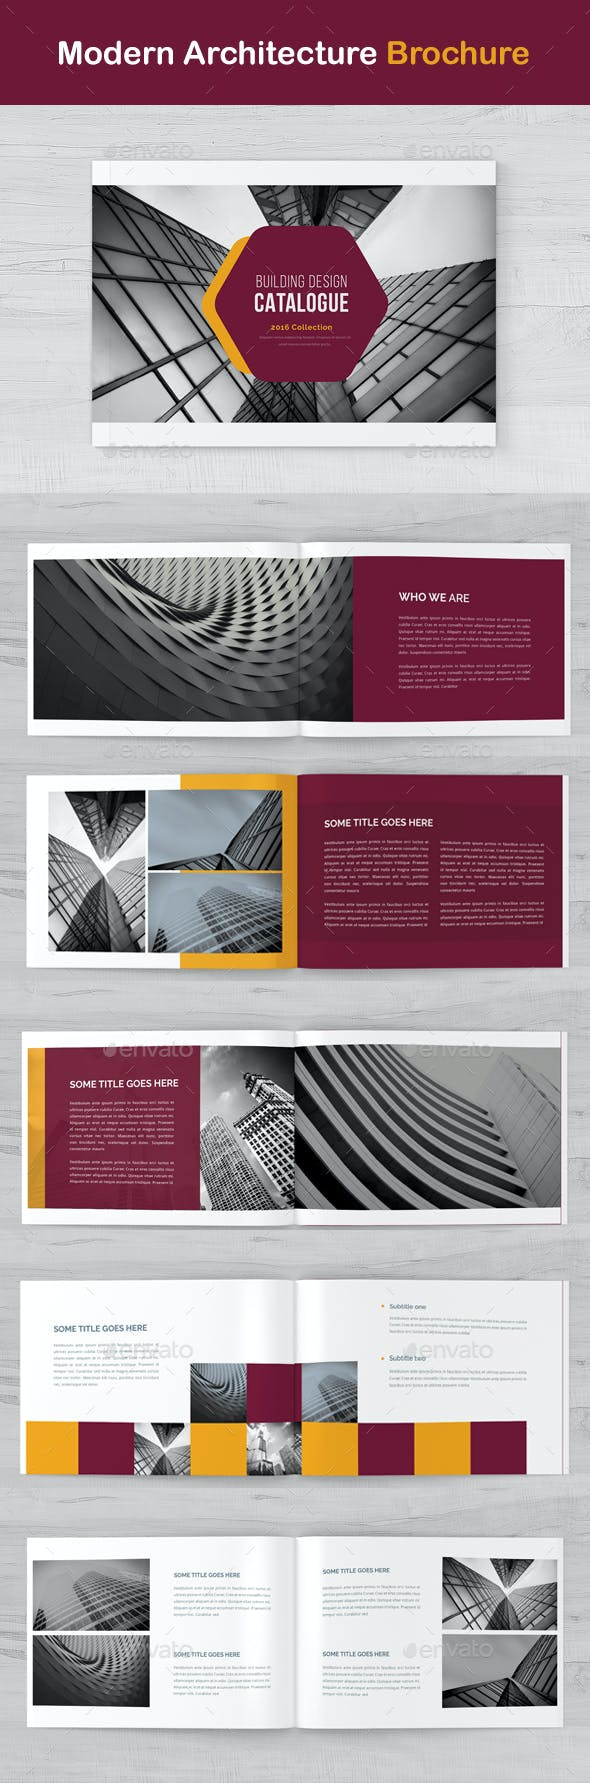 modern architecture brochure by eltawfik2015 graphicriver